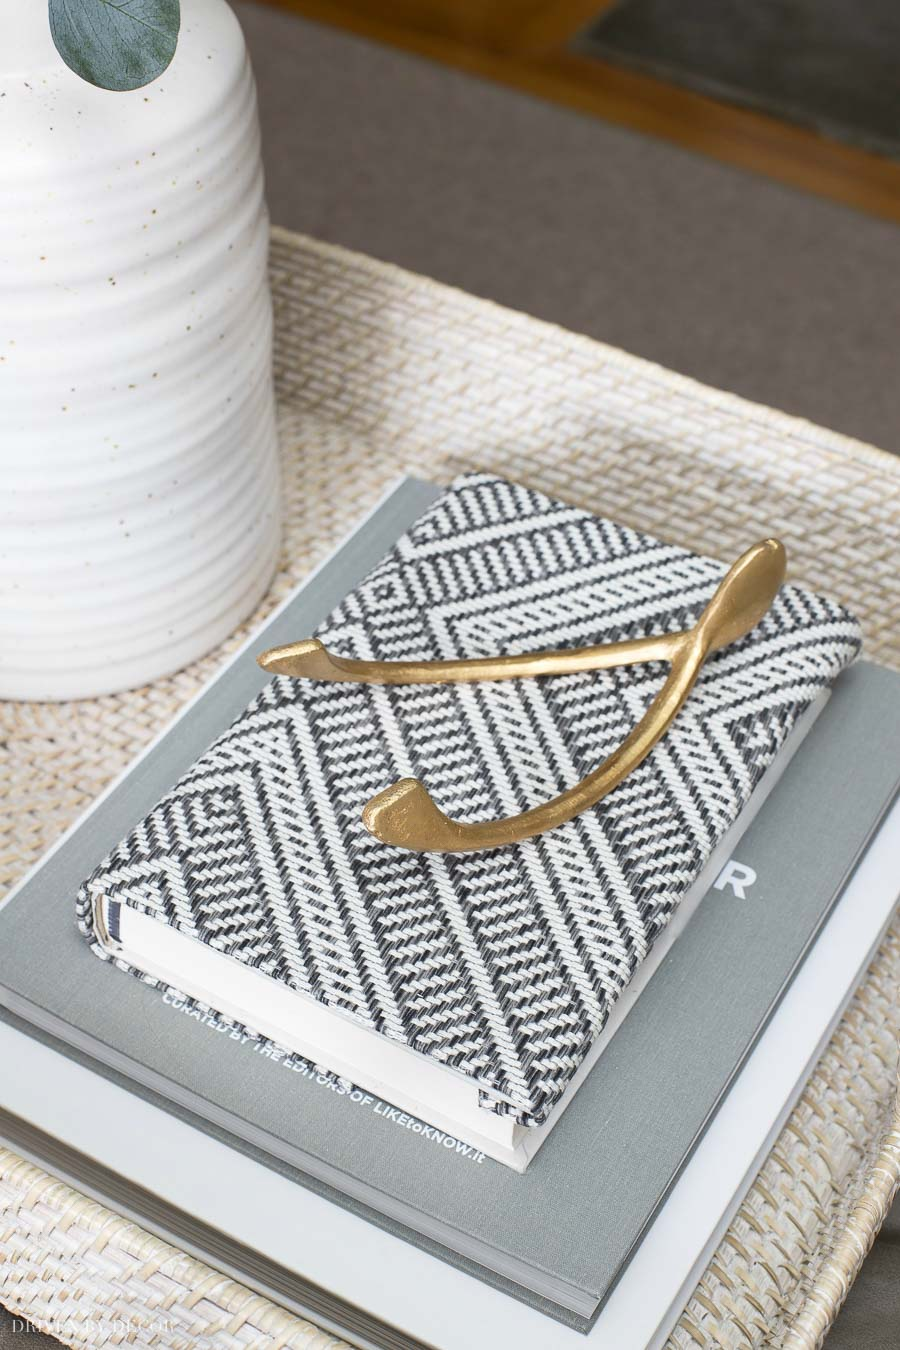 Love the idea of using a favorite fabric remnant to cover a book as part of your coffee table decor!